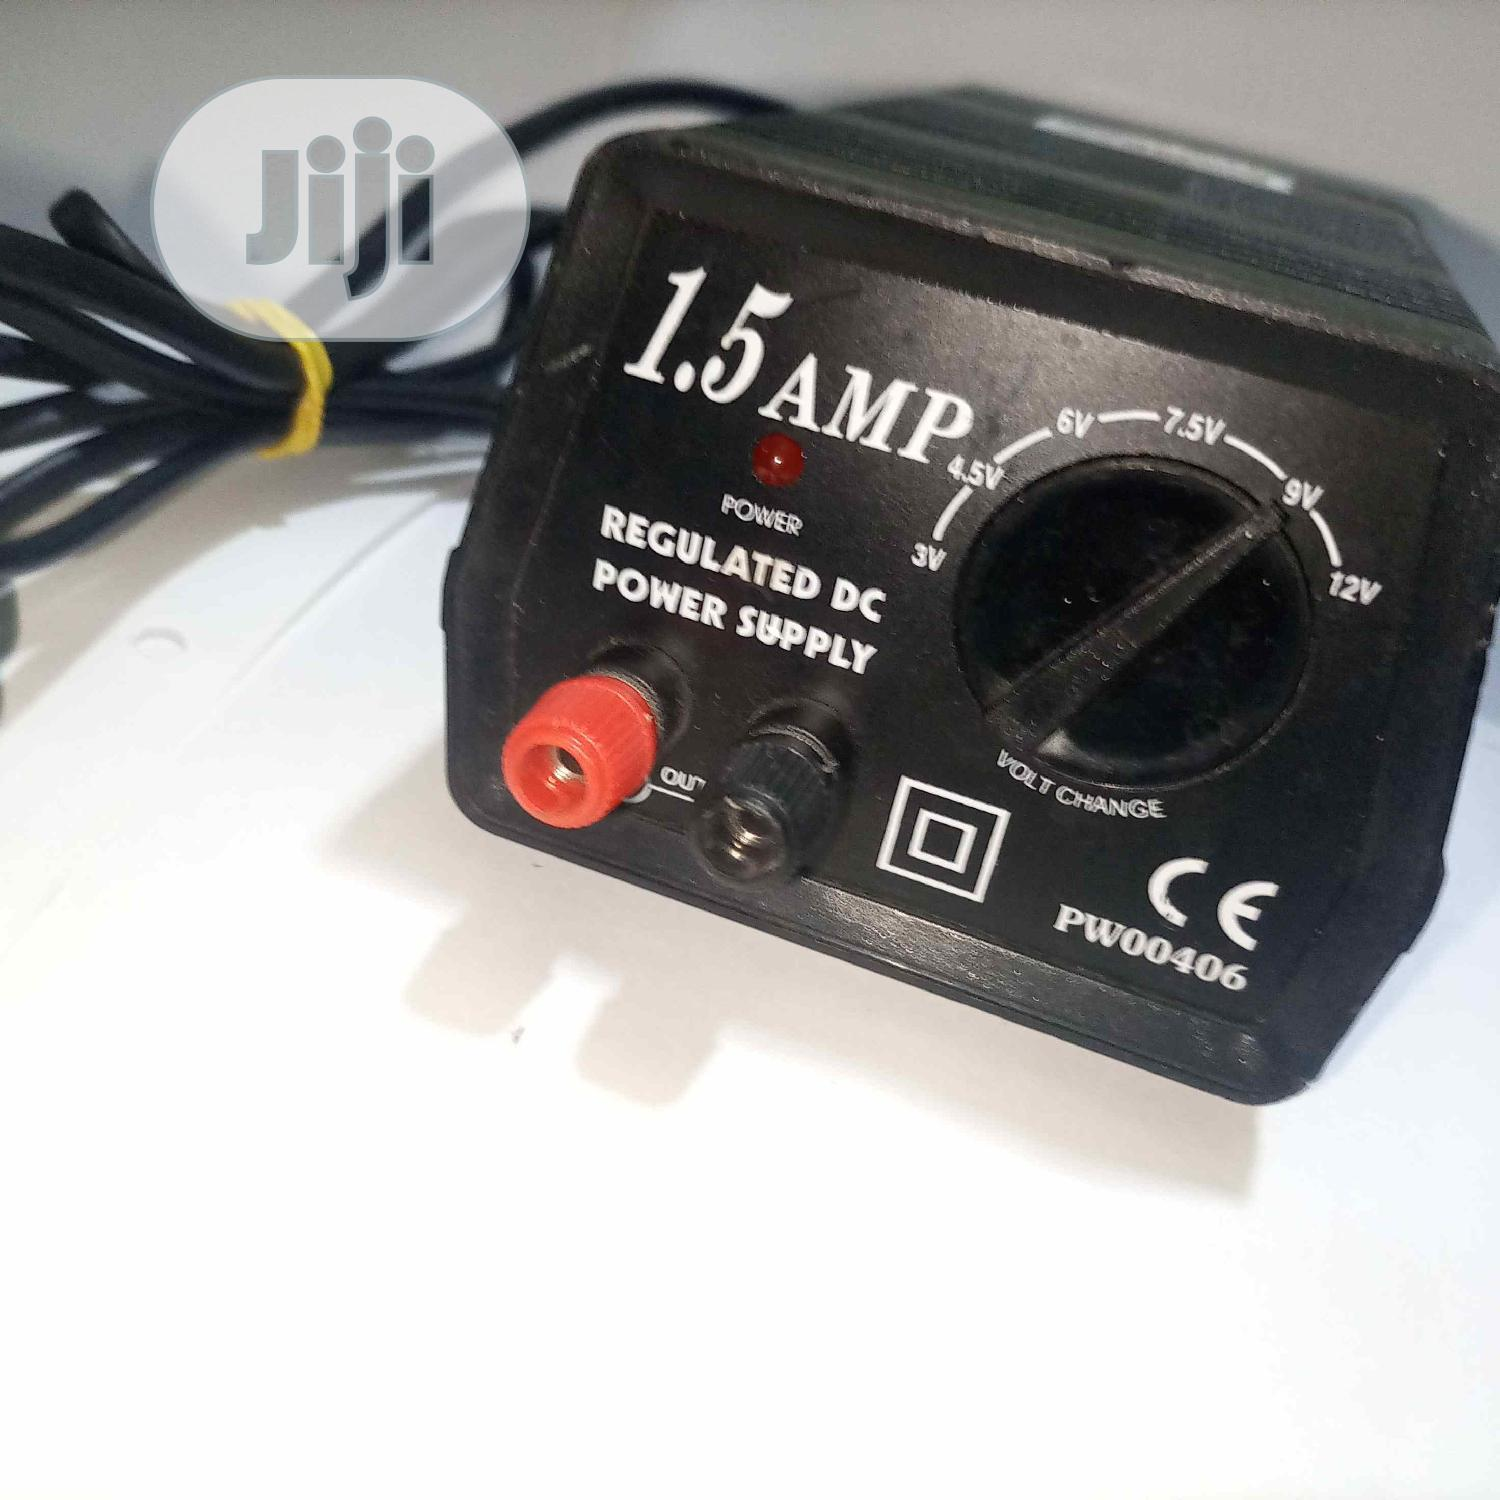 1.5 Amp Regulated Dc Power Supply | Accessories & Supplies for Electronics for sale in Ikeja, Lagos State, Nigeria